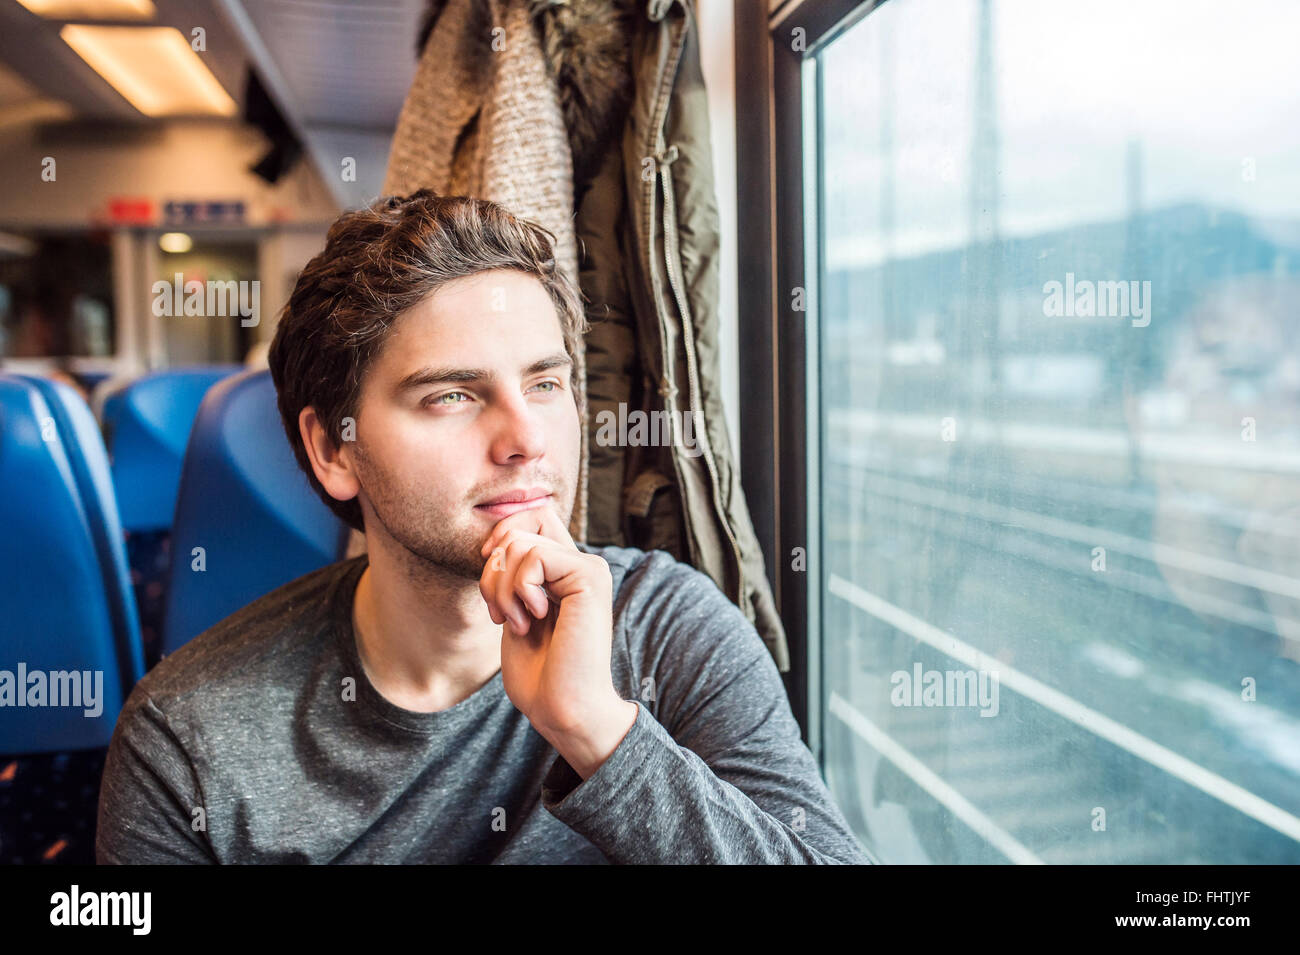 Young Man In Train Car Looking Out Of Window